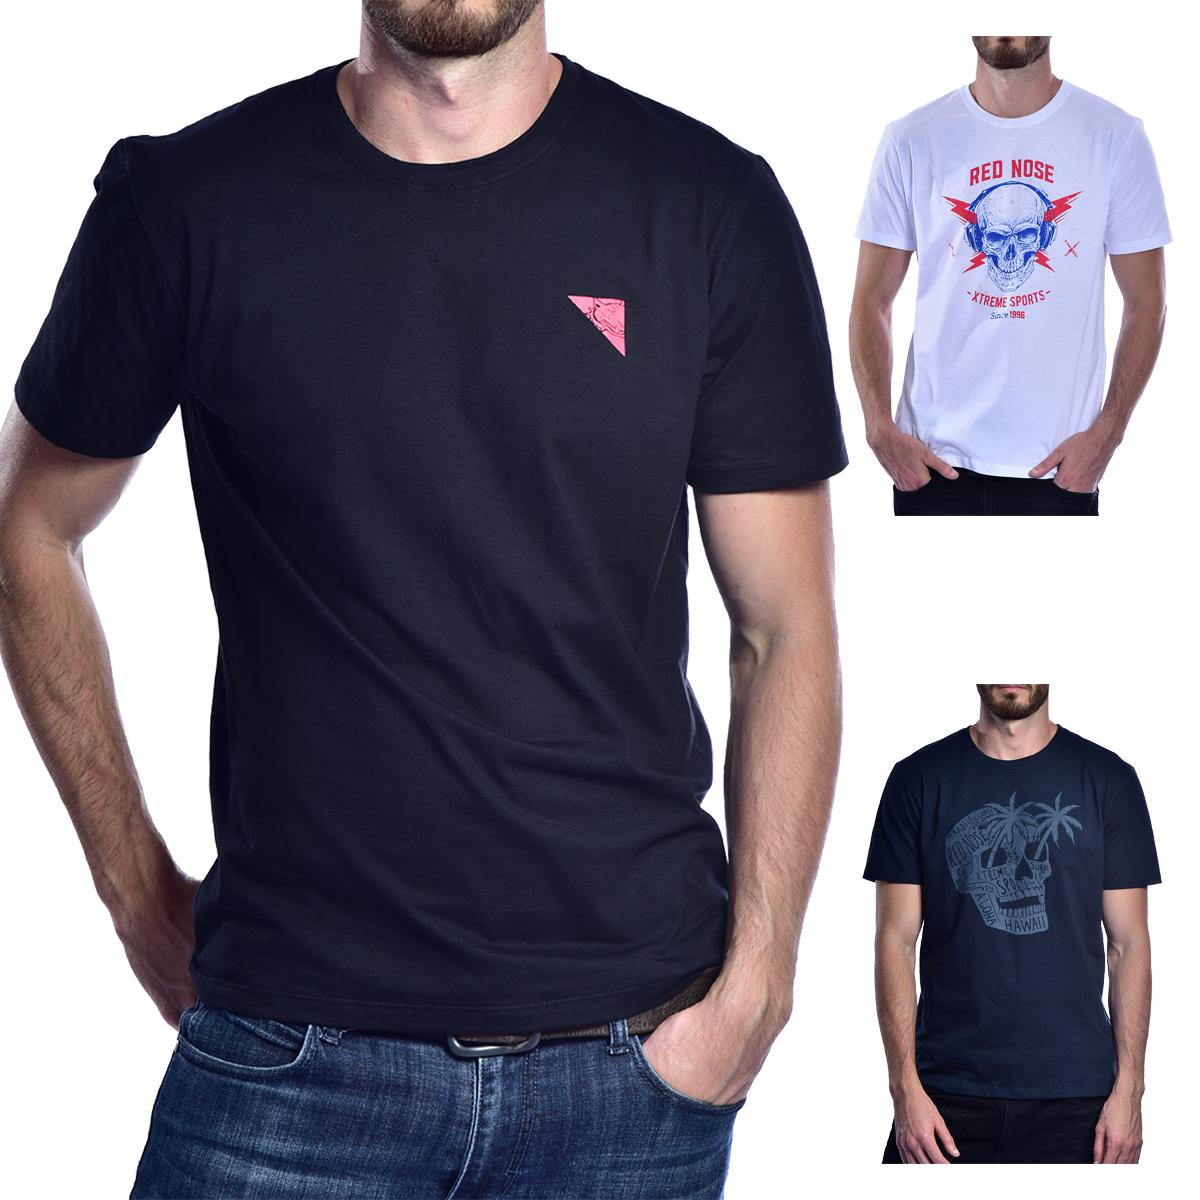 KIT 3 Camisetas Red Nose  - Preto e Branco e Azul Royal P